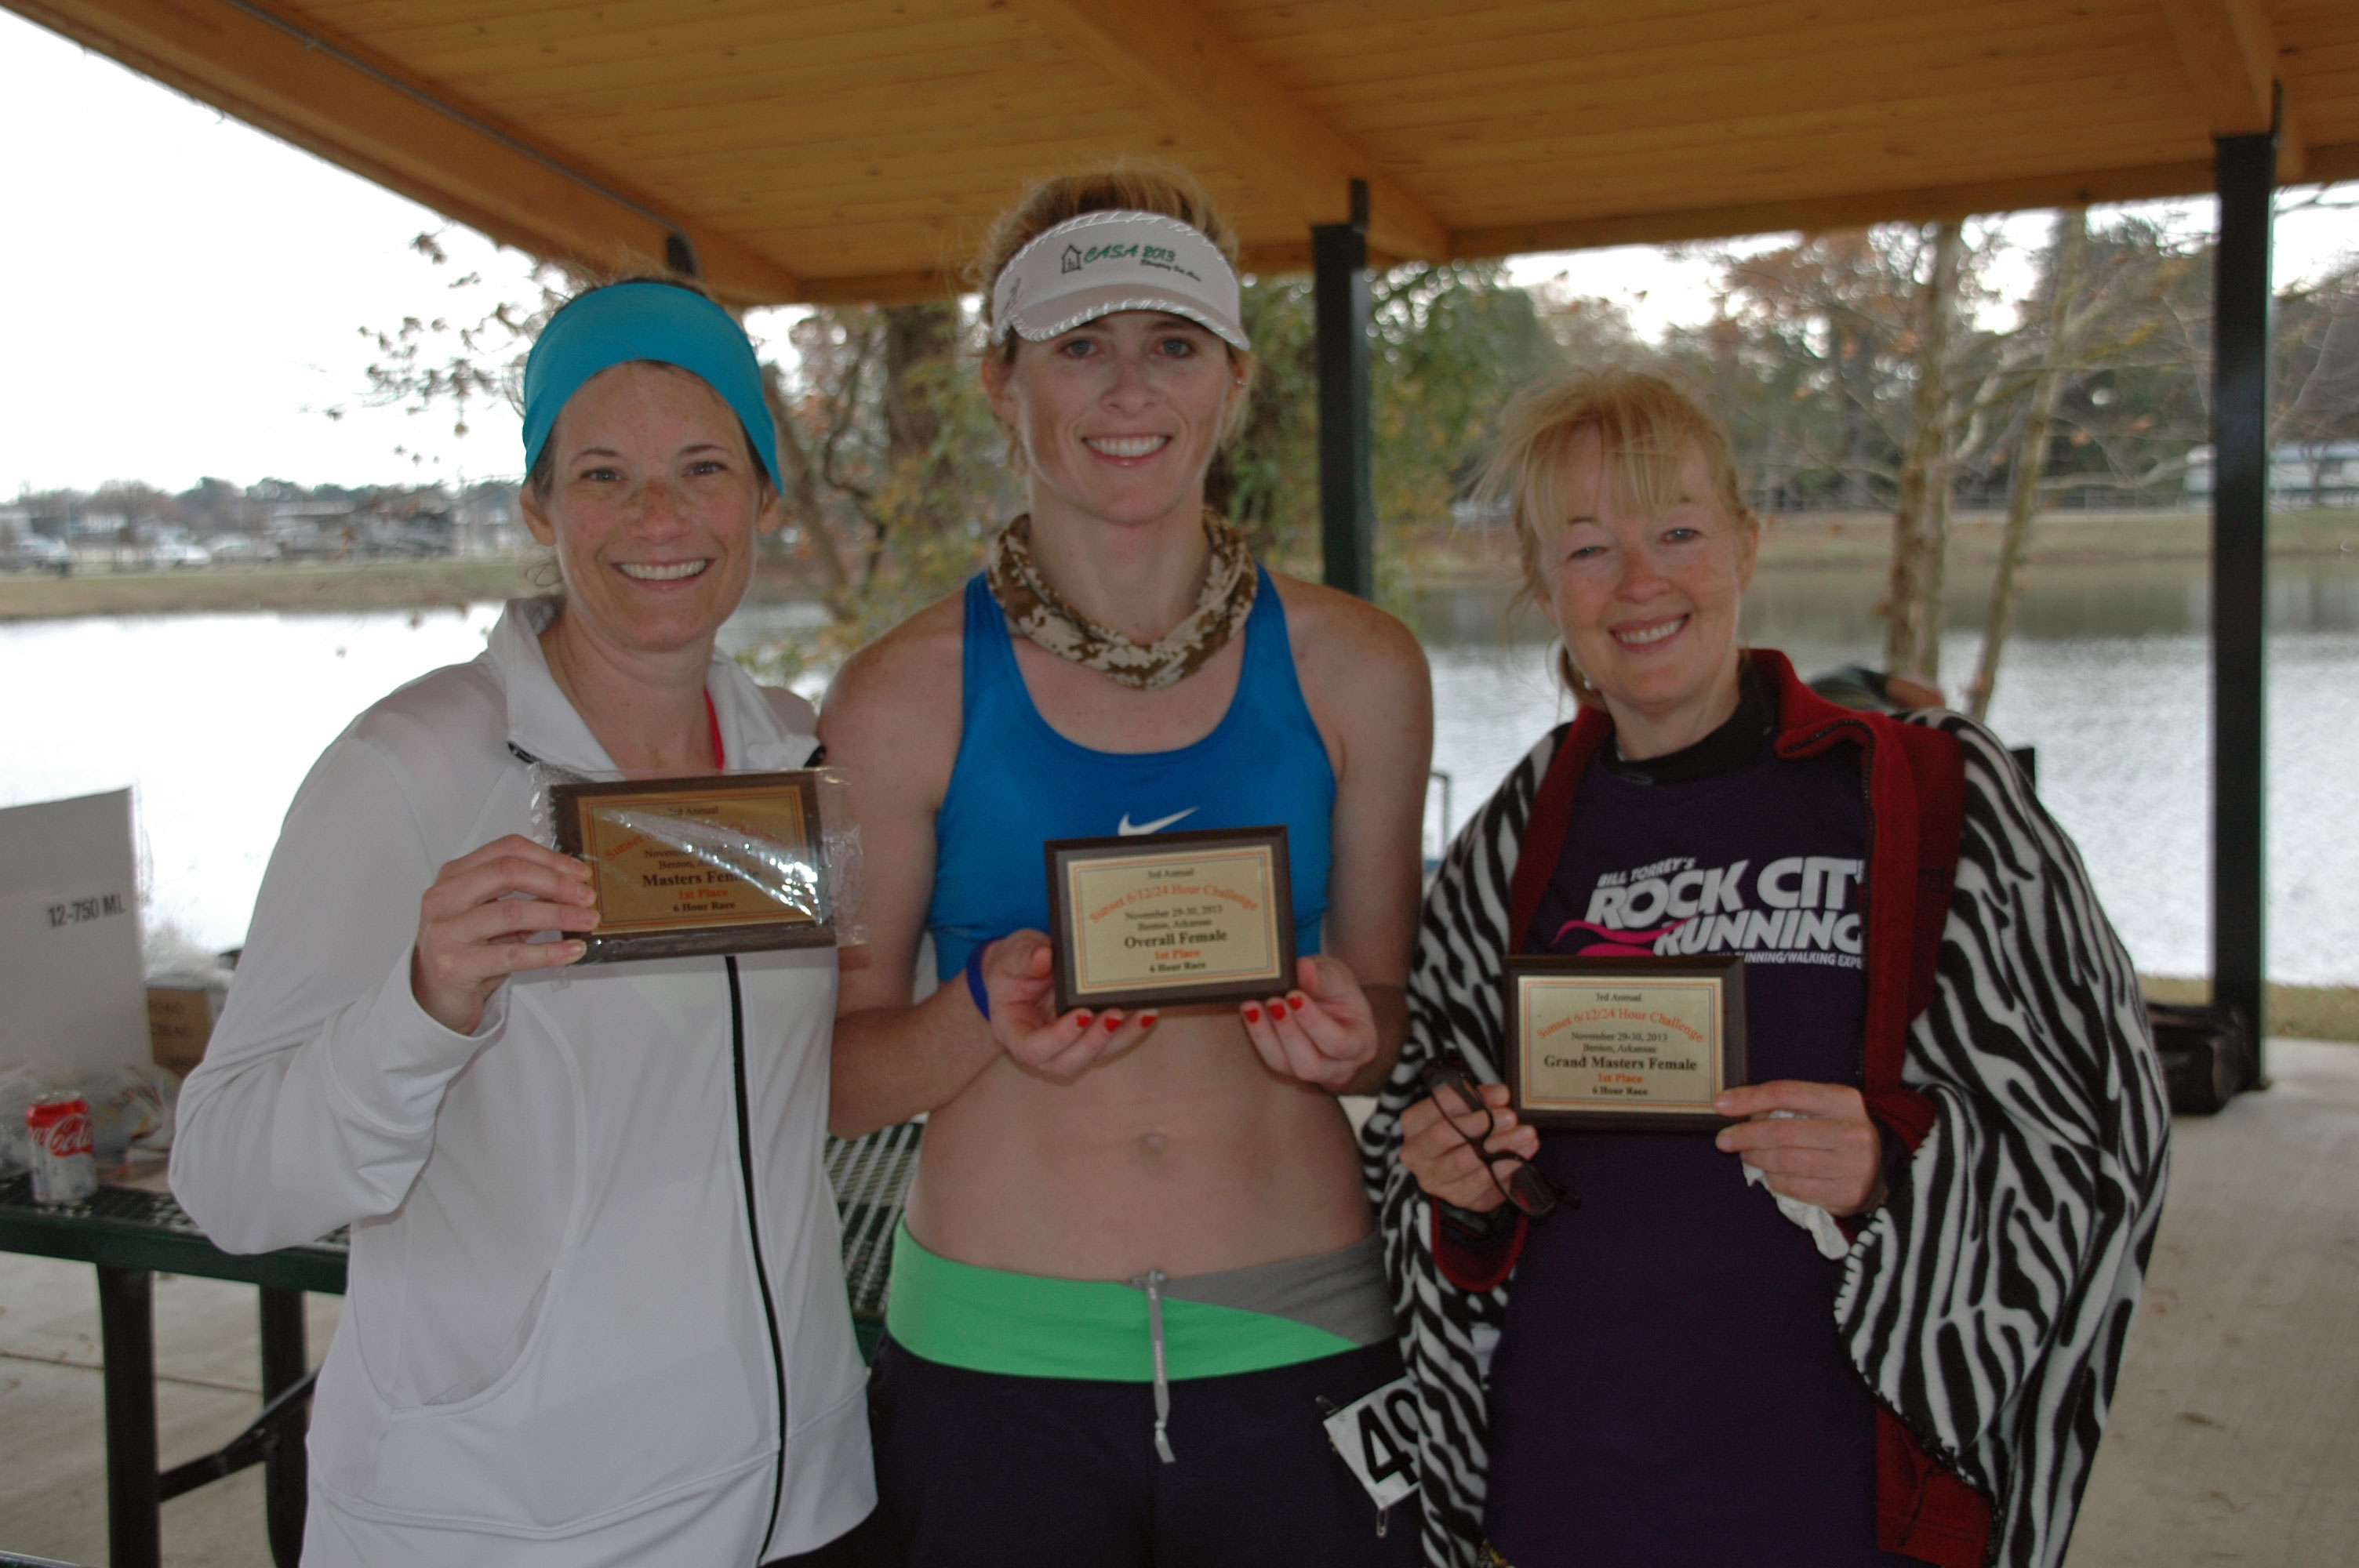 6-Hour ladies with plaques (l-r Kelly Hair, Jenny Wilkes, Annette Blanton)